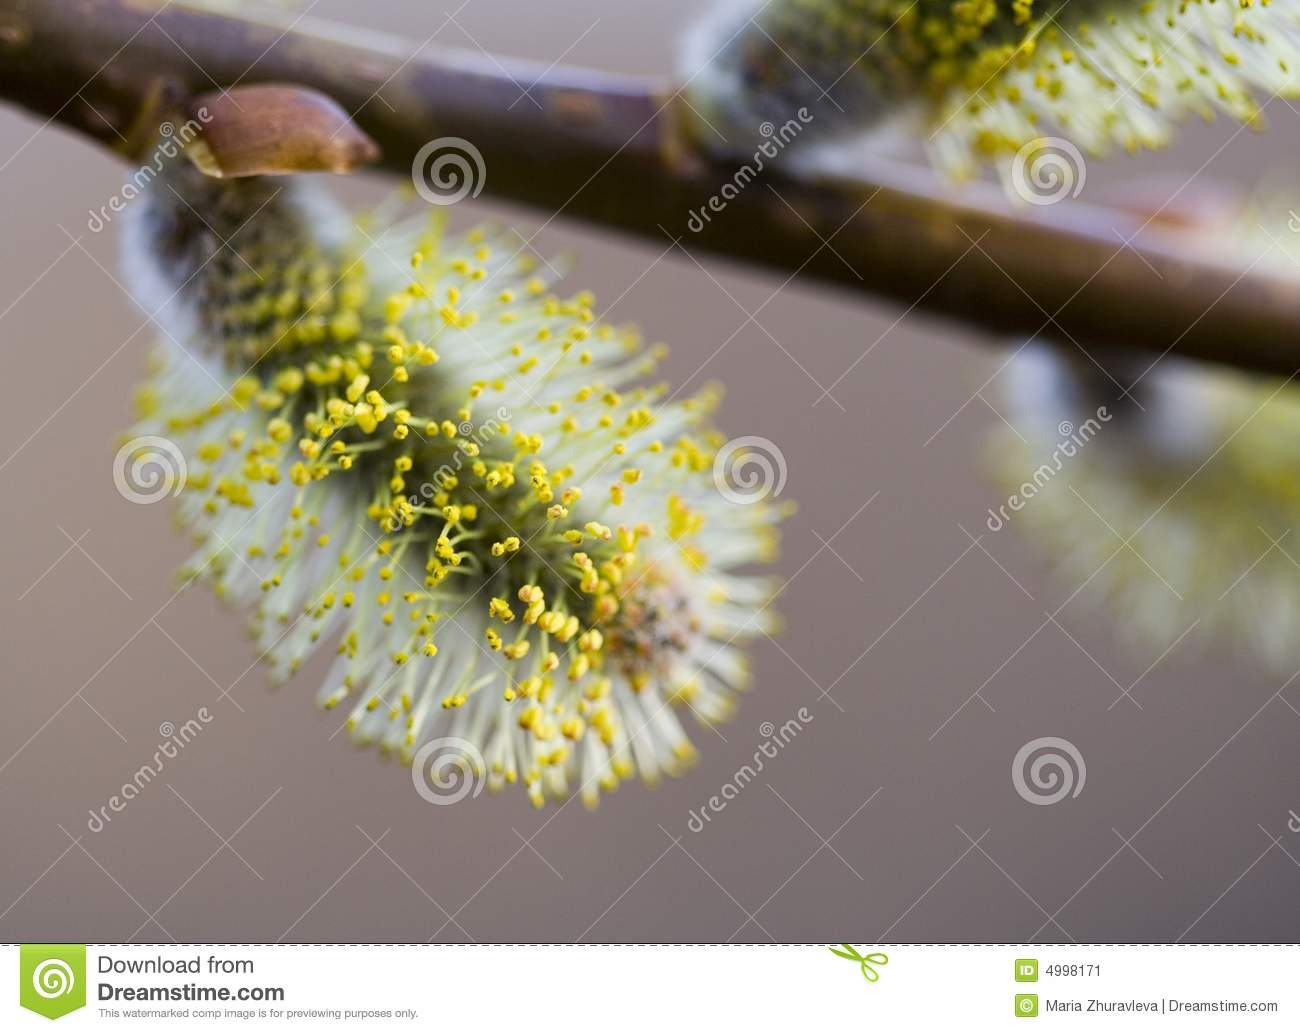 Blossom image pussy willow